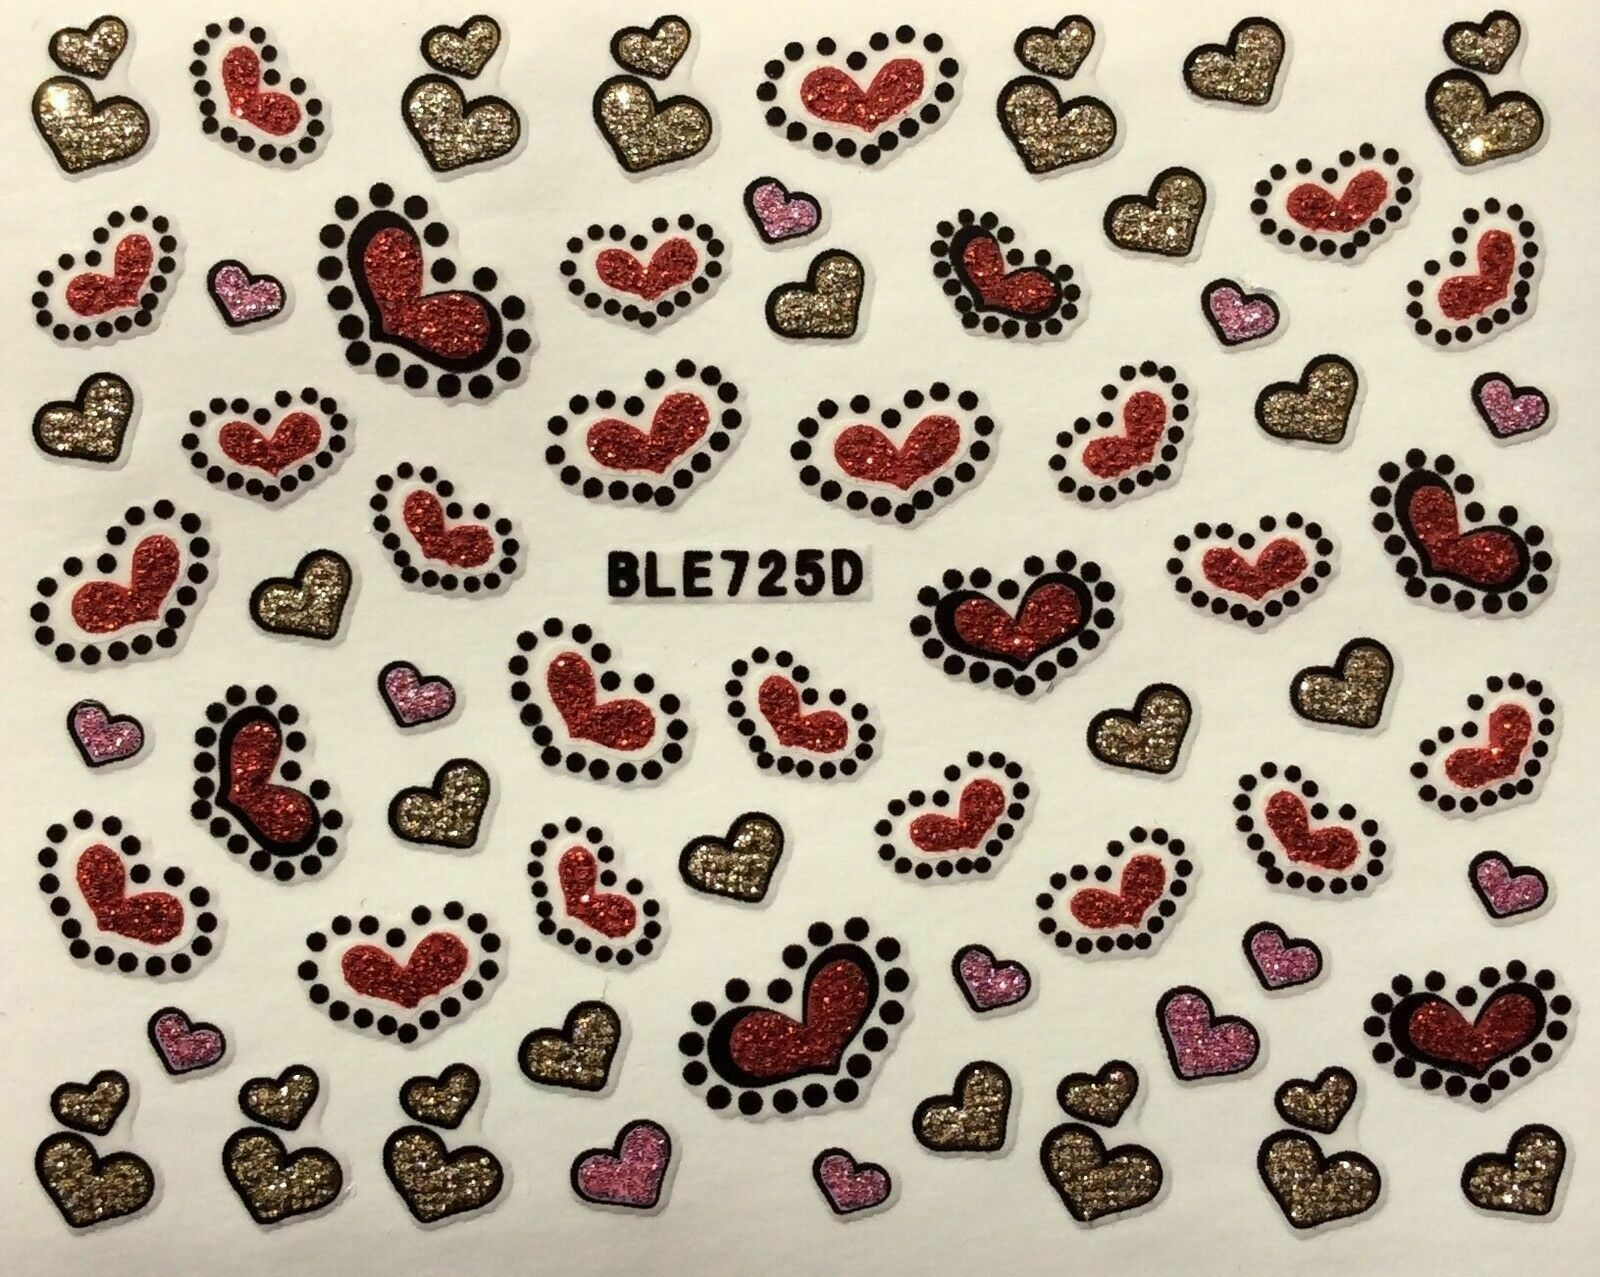 Primary image for Nail Art 3D Glitter Decal Stickers Pink Red Gold Hearts Valentine's Day BLE725D